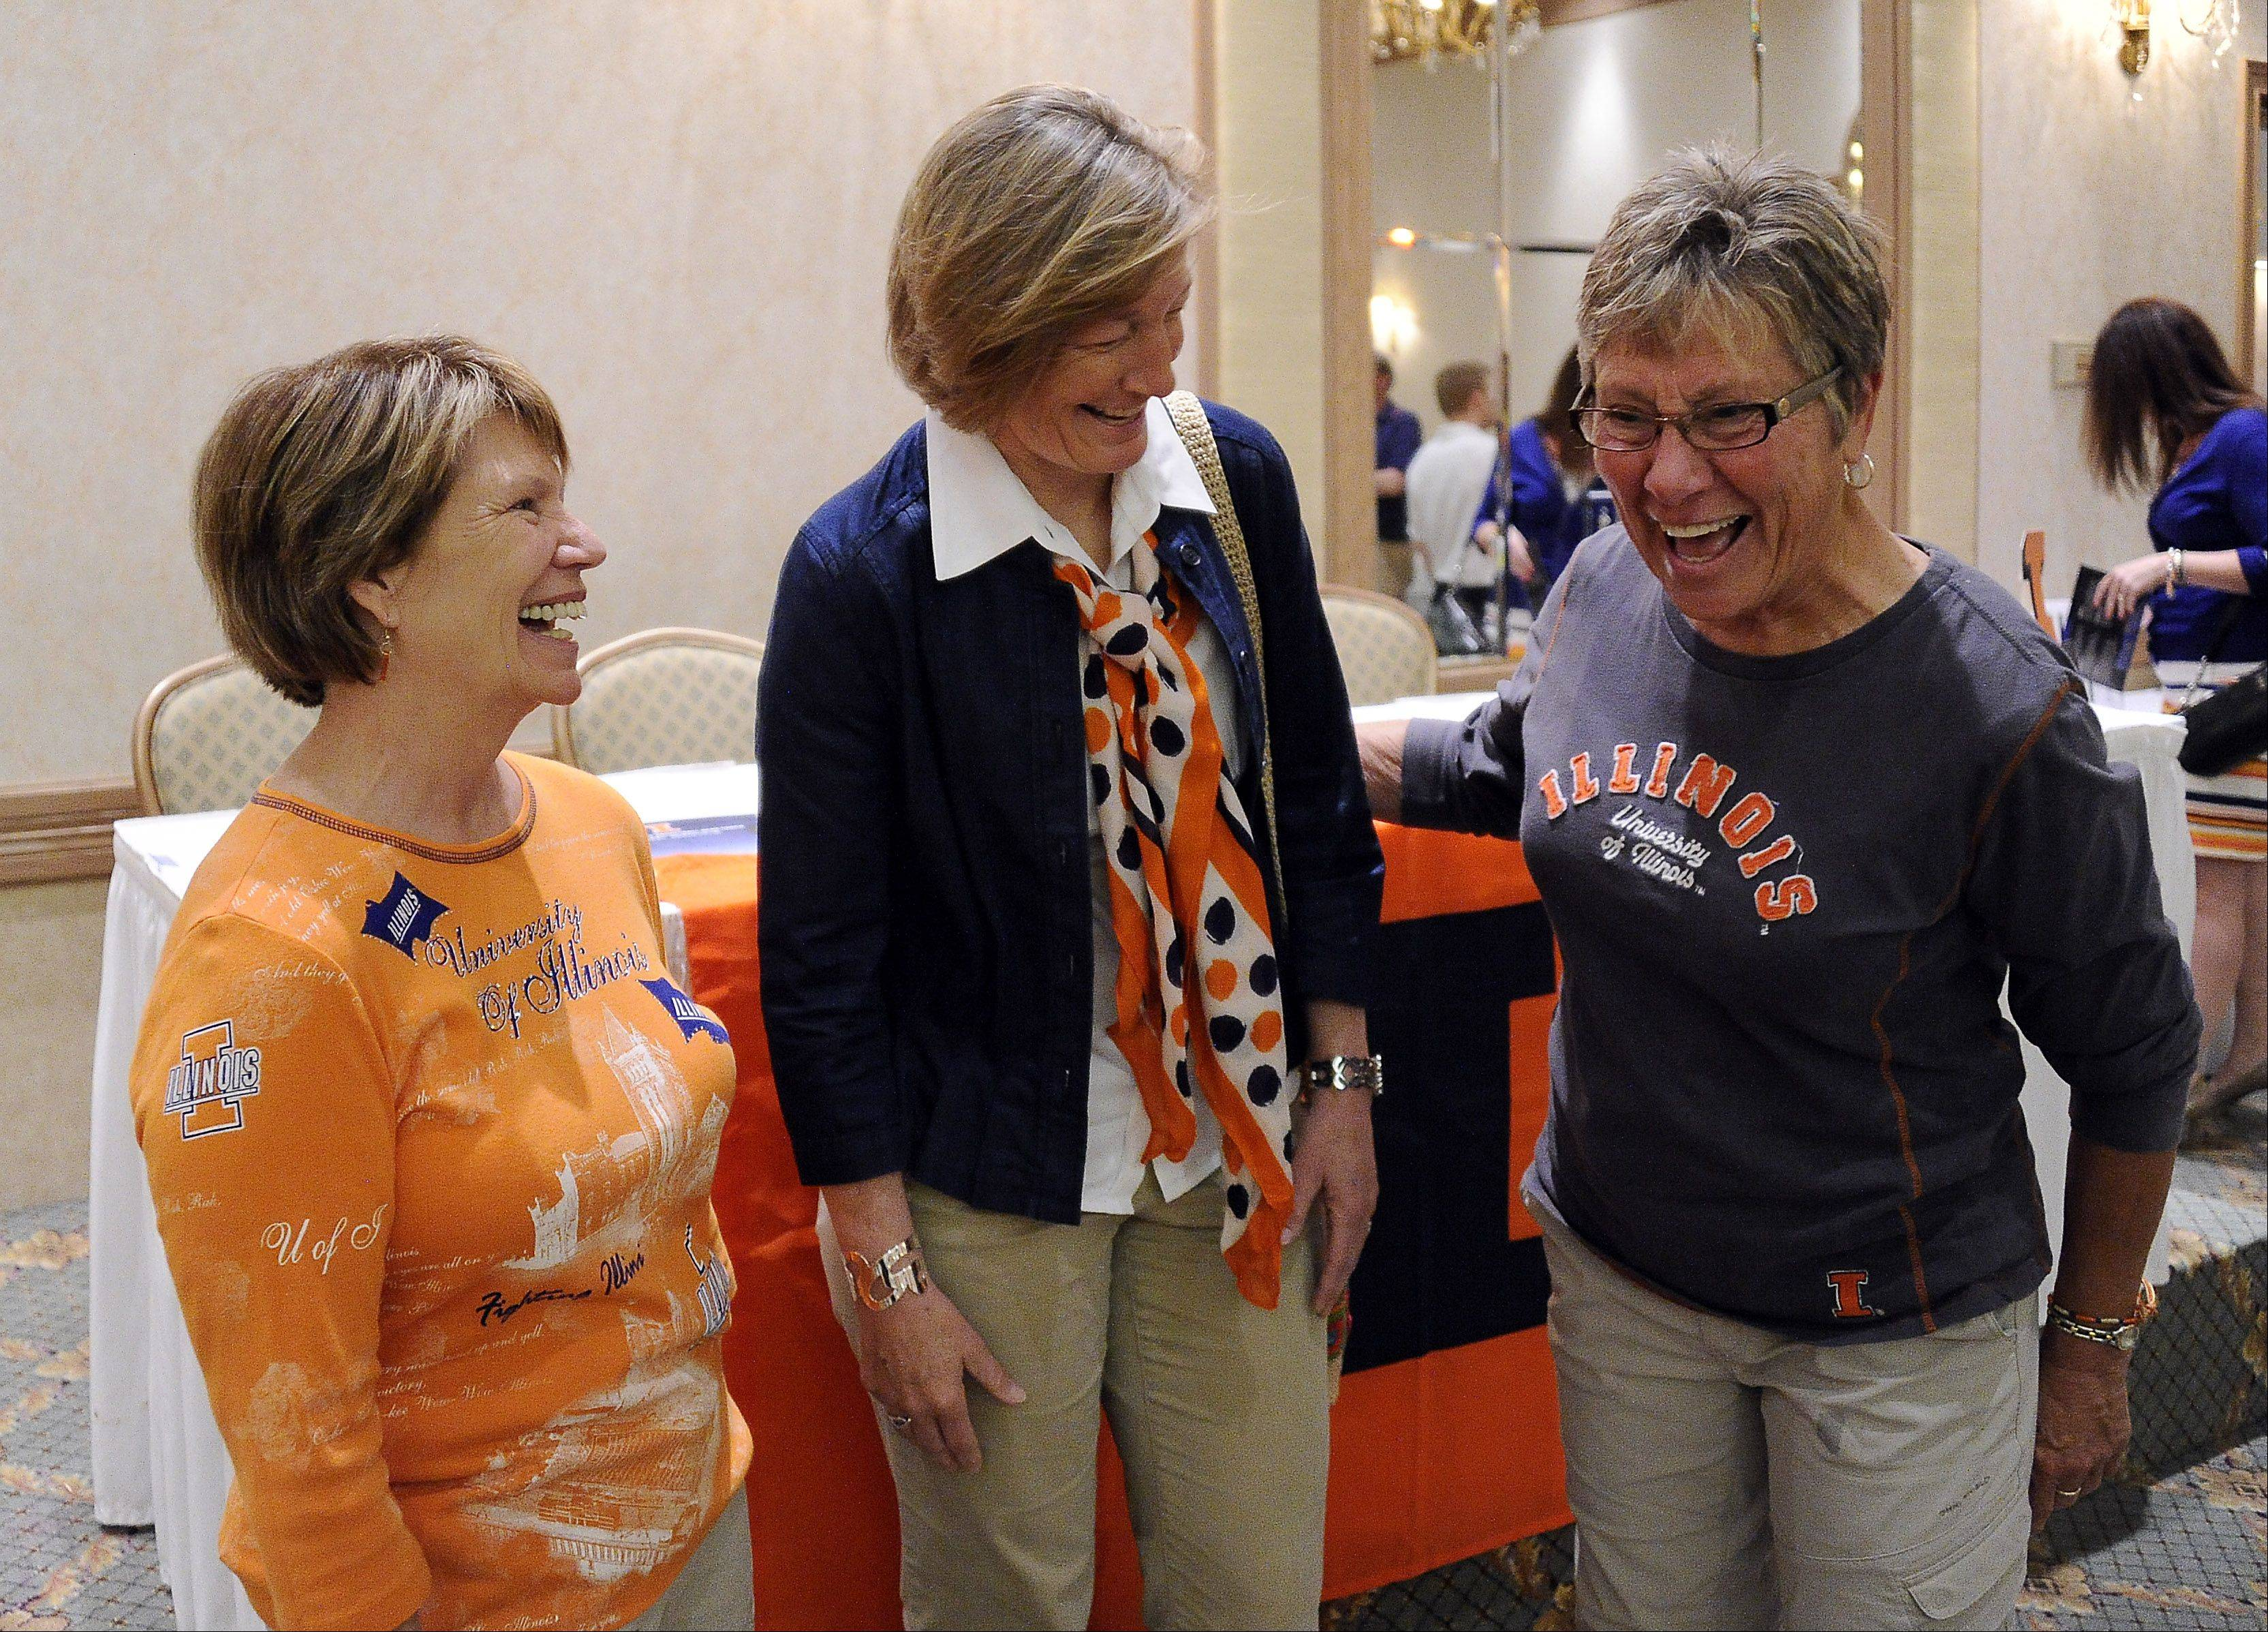 Illinois women's soccer coach Janet Rayfield talks with Hilary Carlson, left, of Bloomingdale, and Cheryl Wittler, right, of Wheaton, at the Illini Caravan event Wednesday in Rolling Meadows.